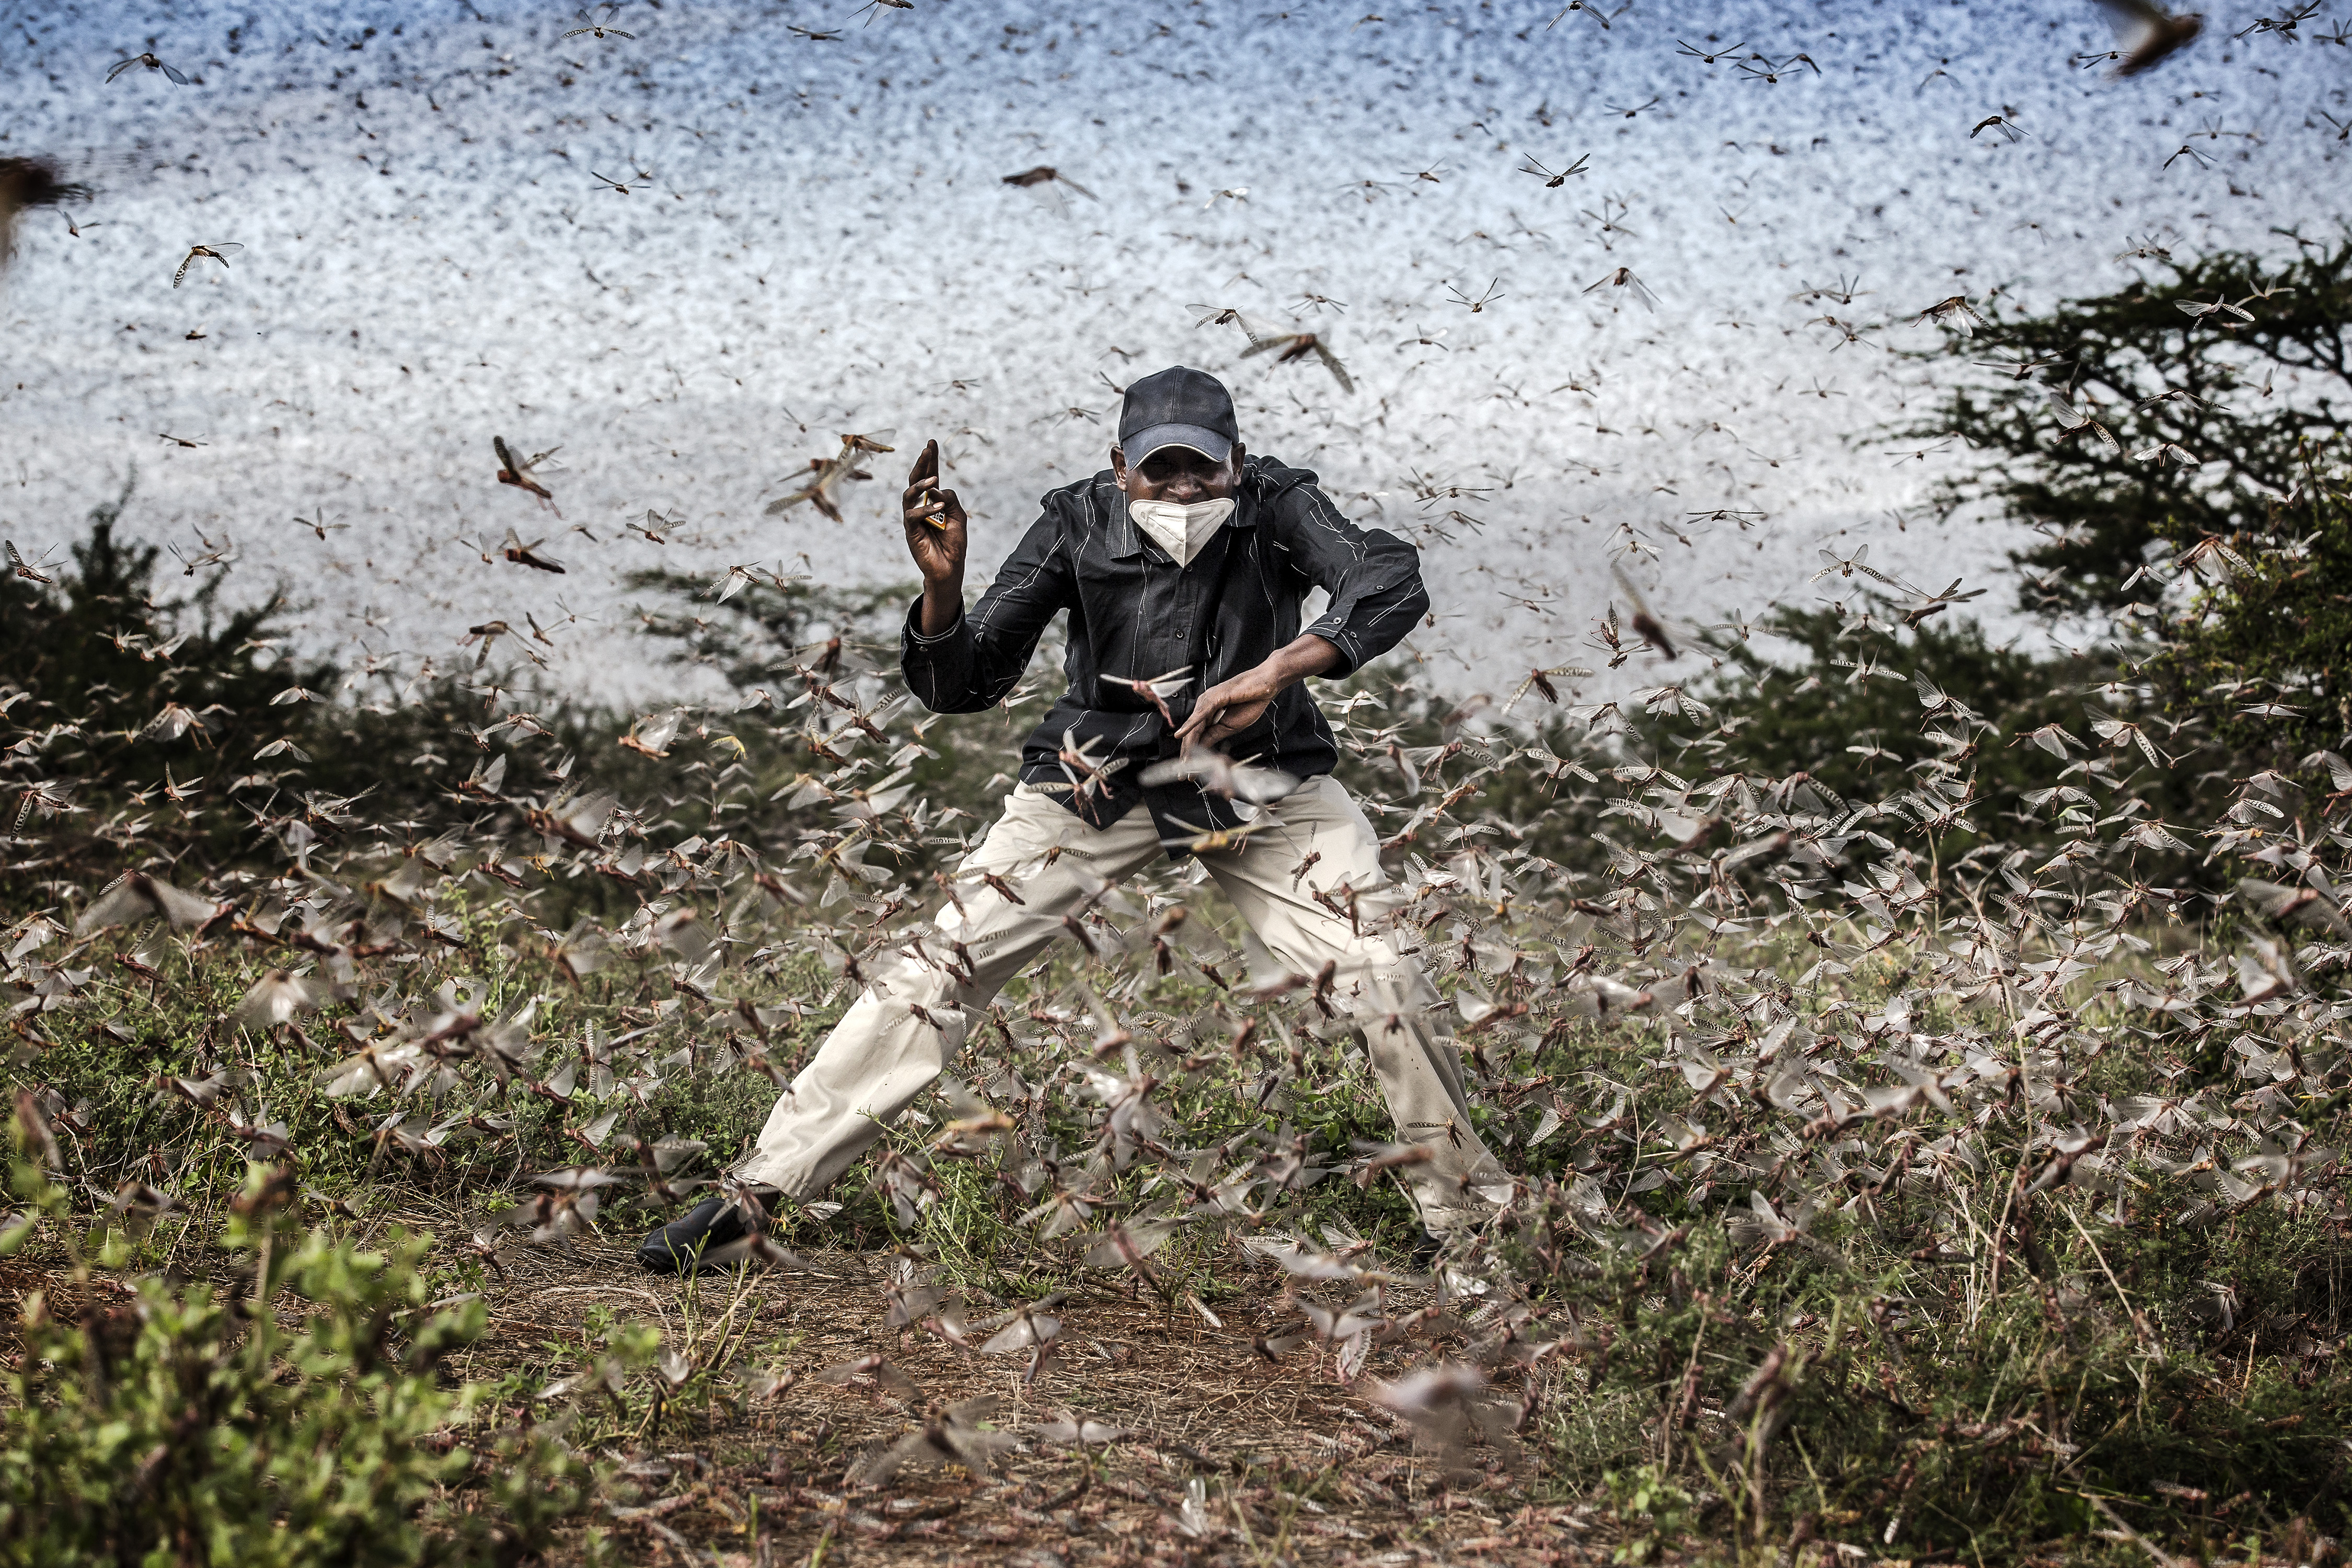 Fighting Locust Invasion in East Africa, Luis Tato, Spain, for The Washington Post